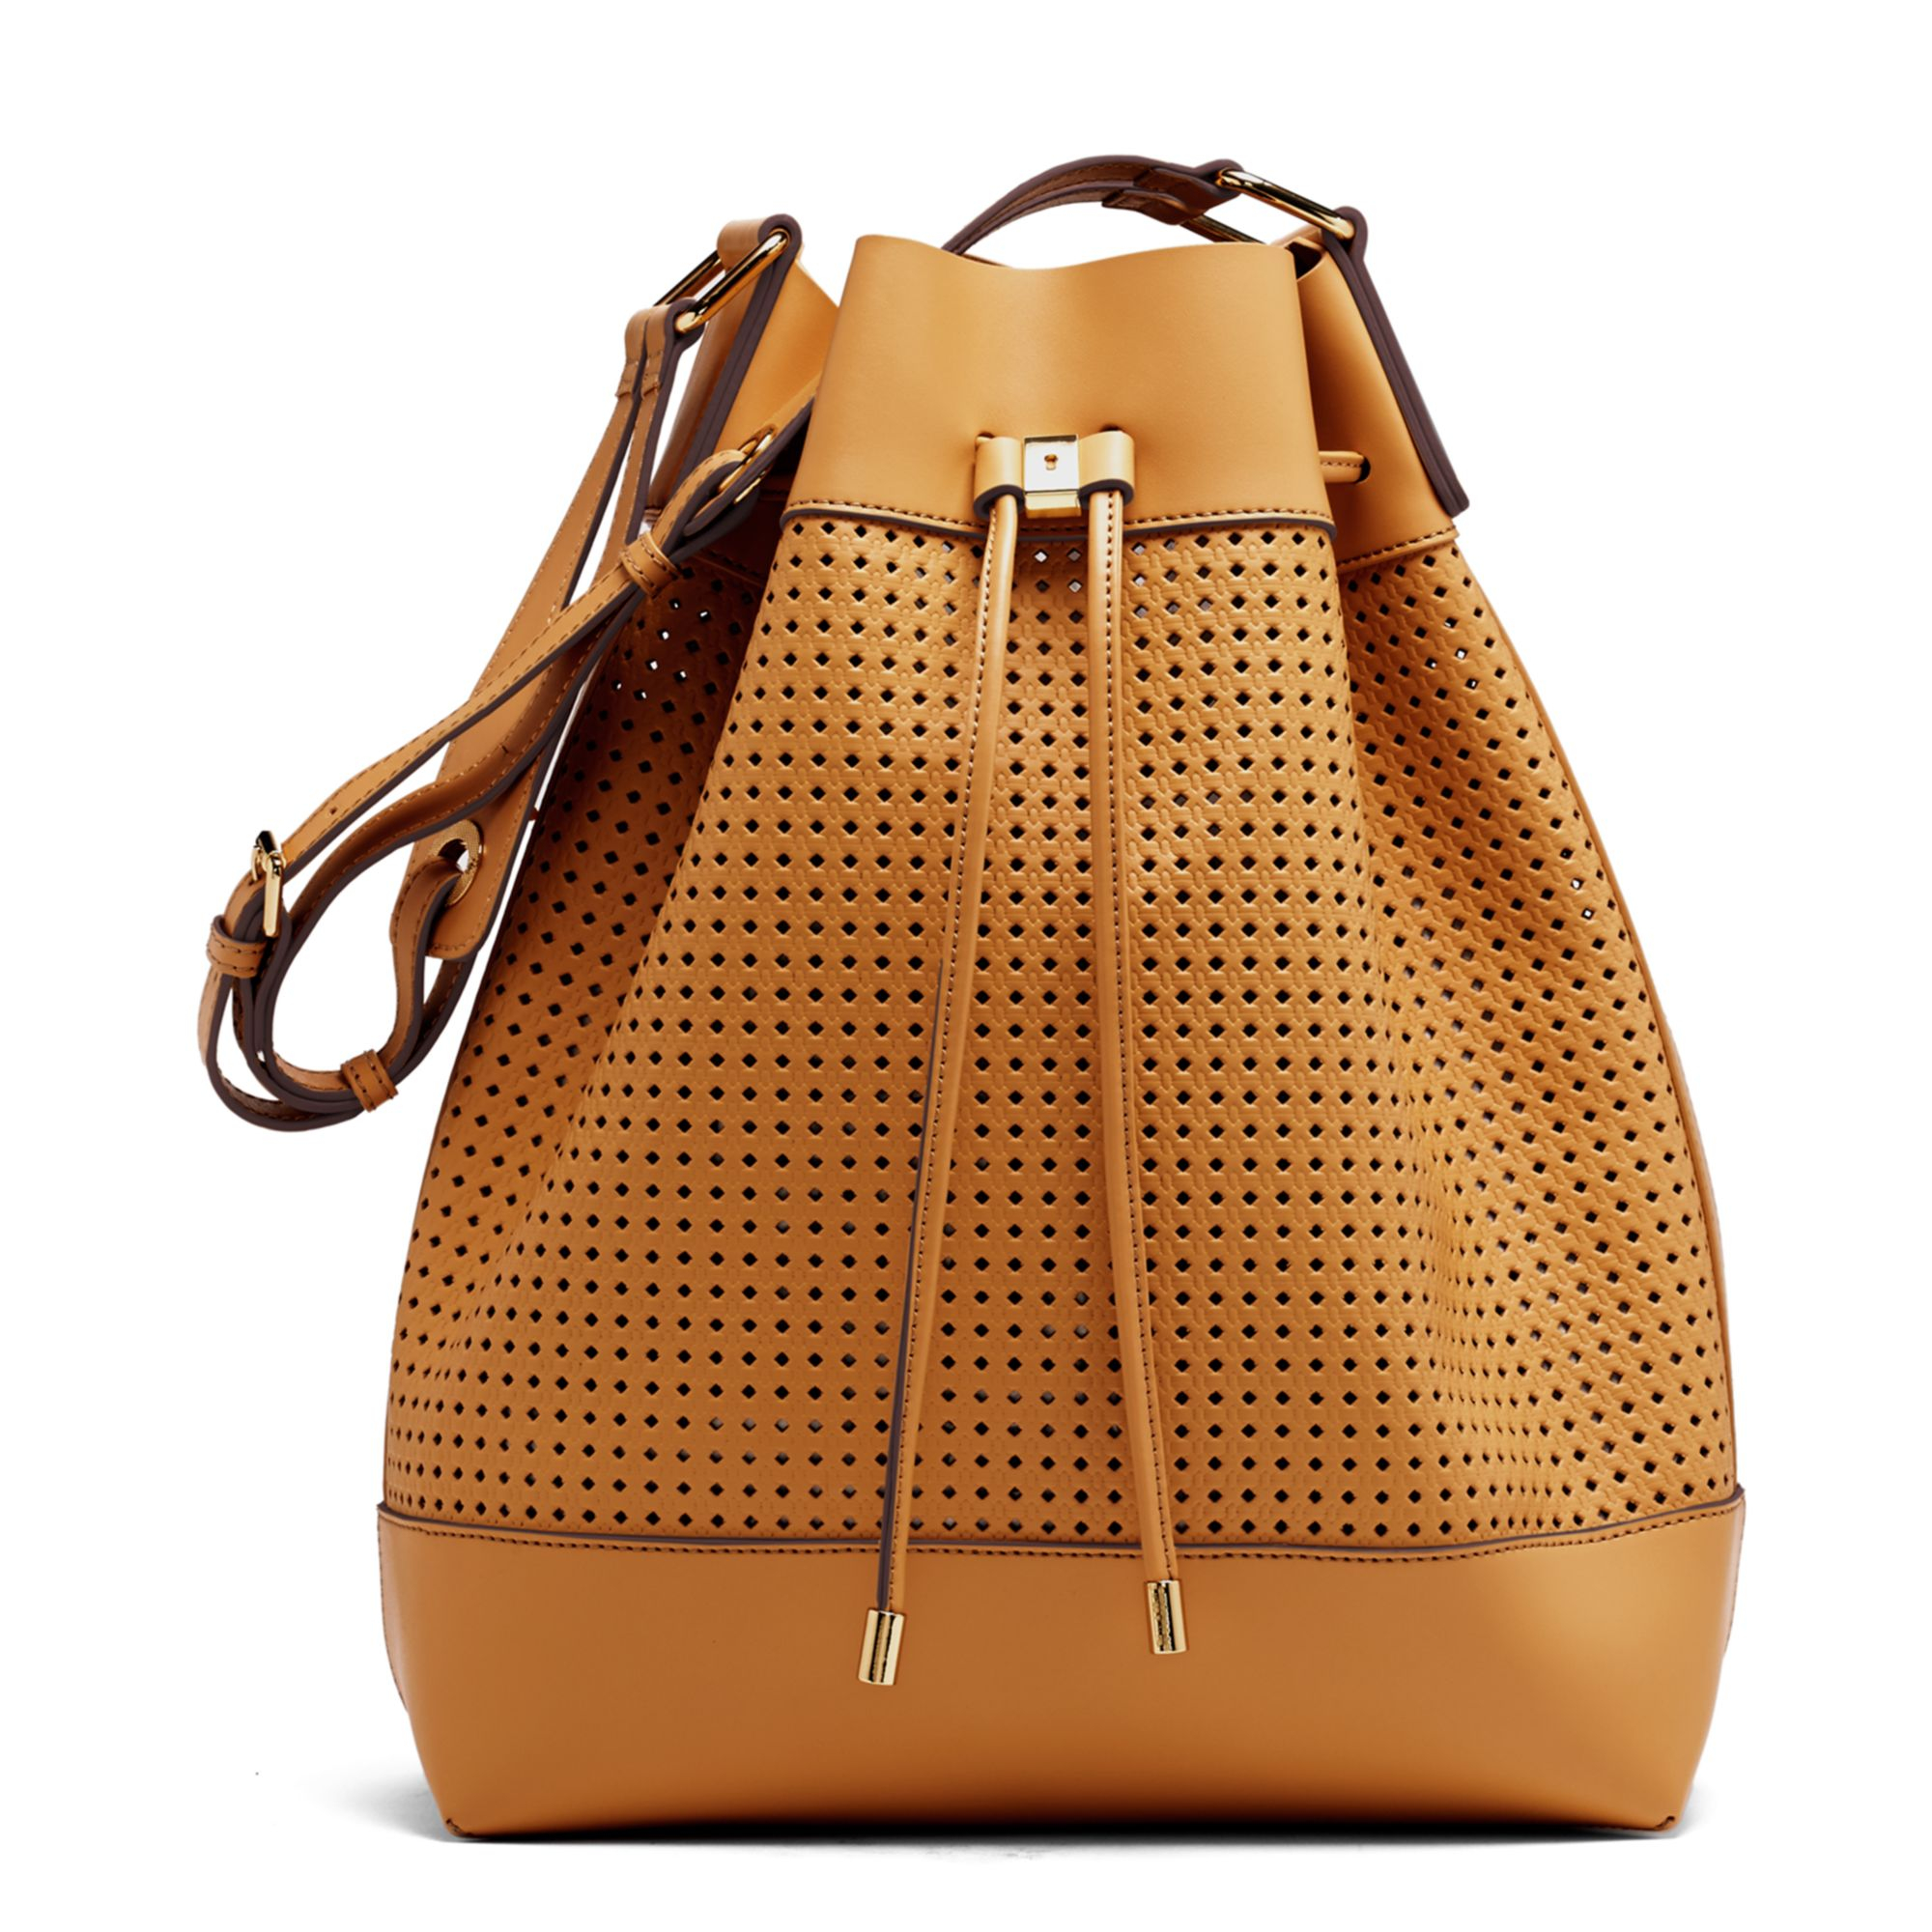 Vince camuto Colby Drawstring Bag in Brown   Lyst